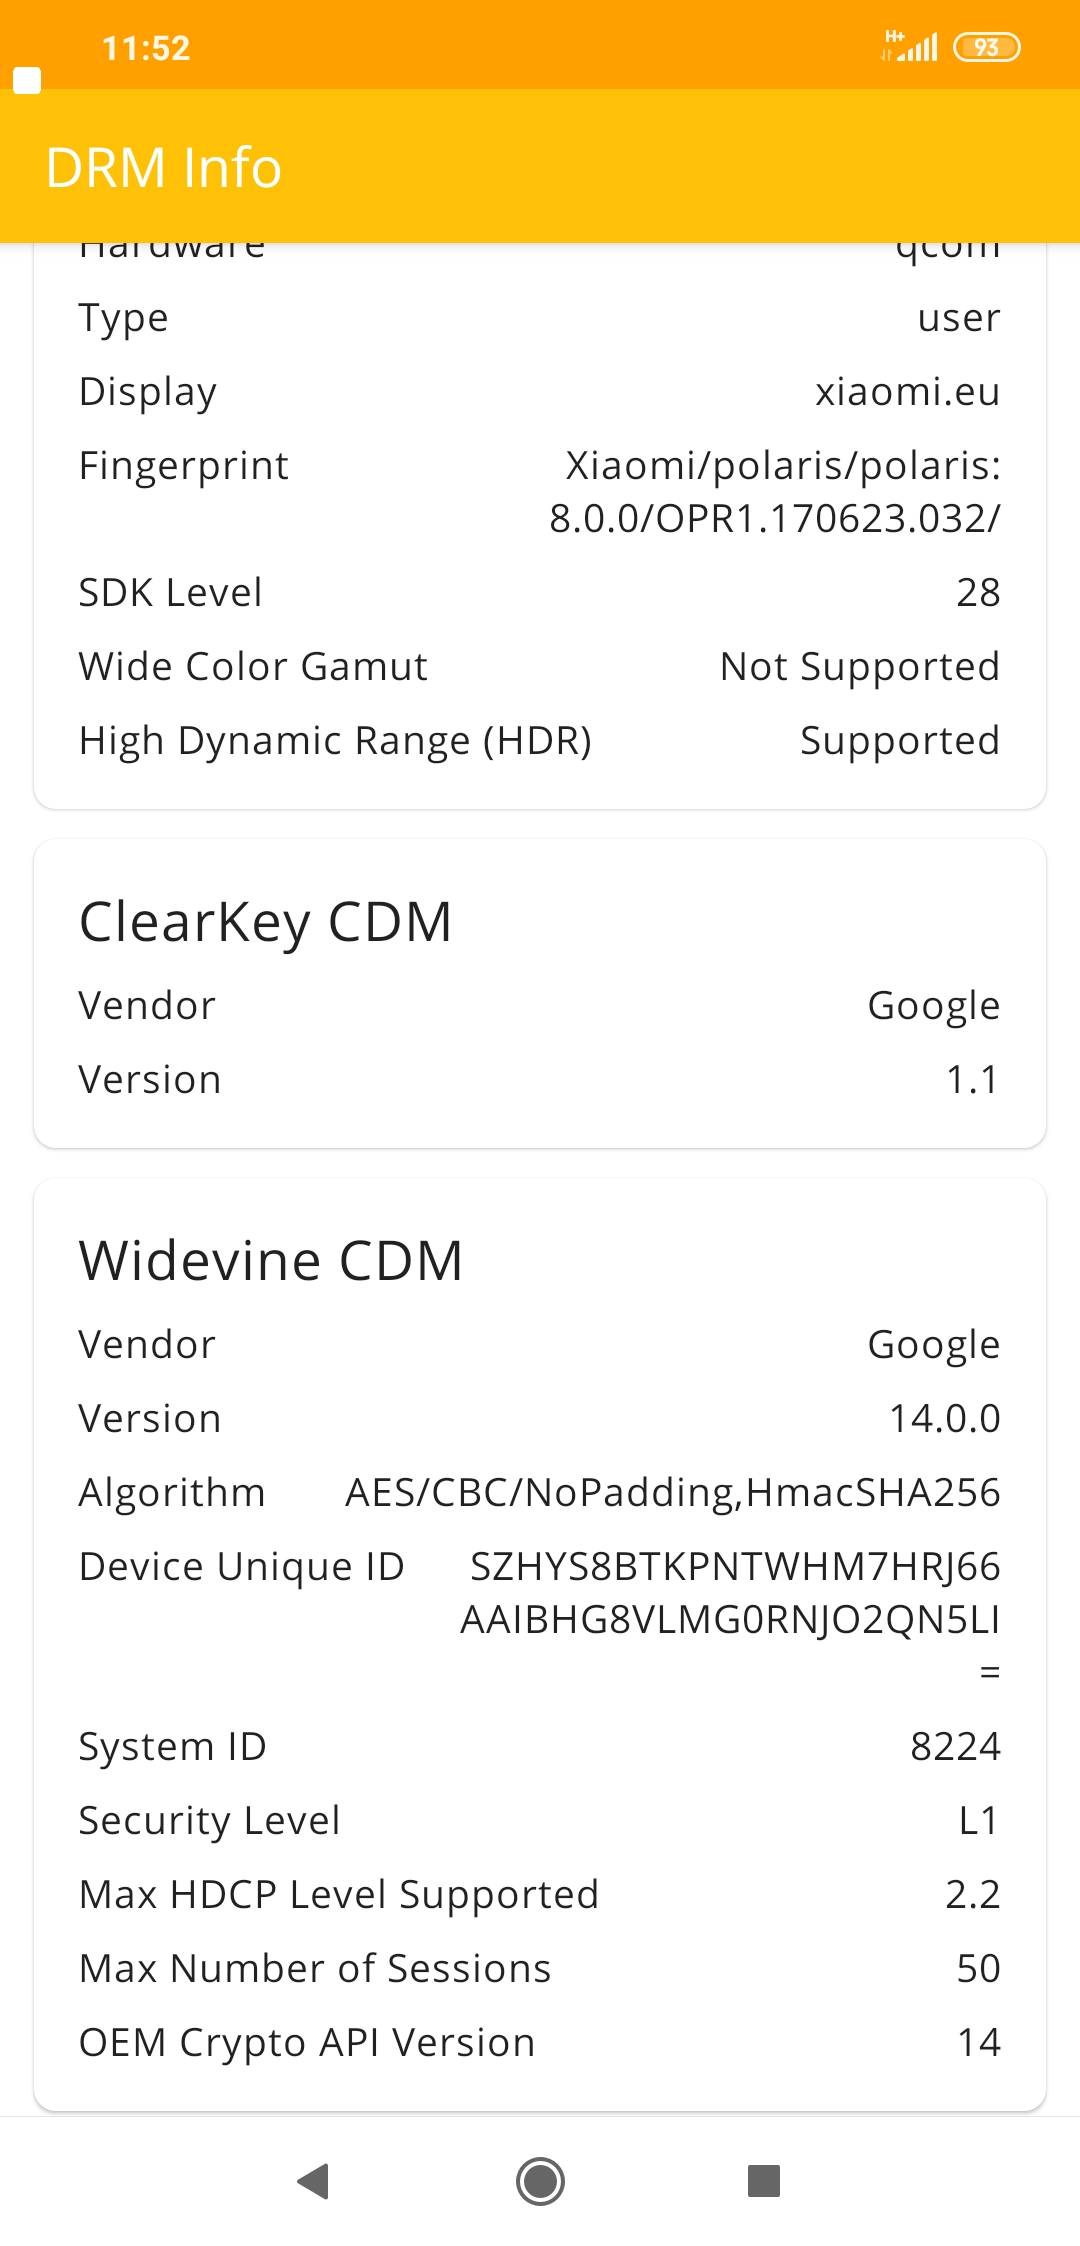 Invalid - Widevine L1 changes to L3 after installing xiaomi eu rom